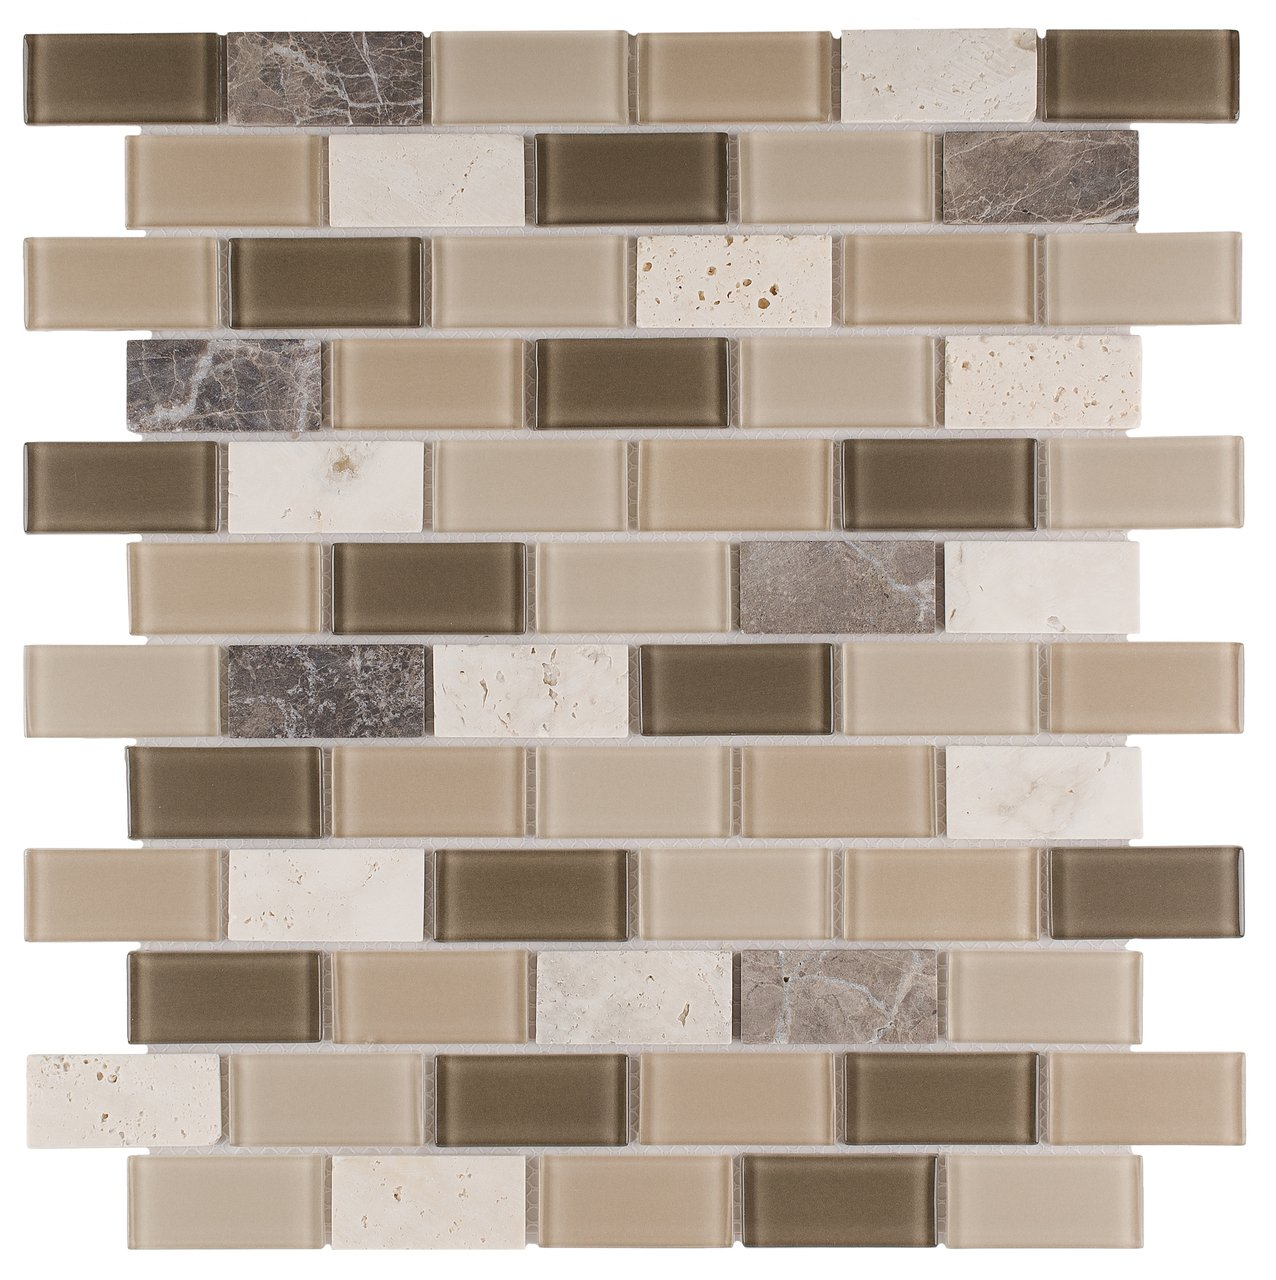 Amazon.com: Peel & Stick Tiles 15 Ft Backsplash Kit Rome: Home ...